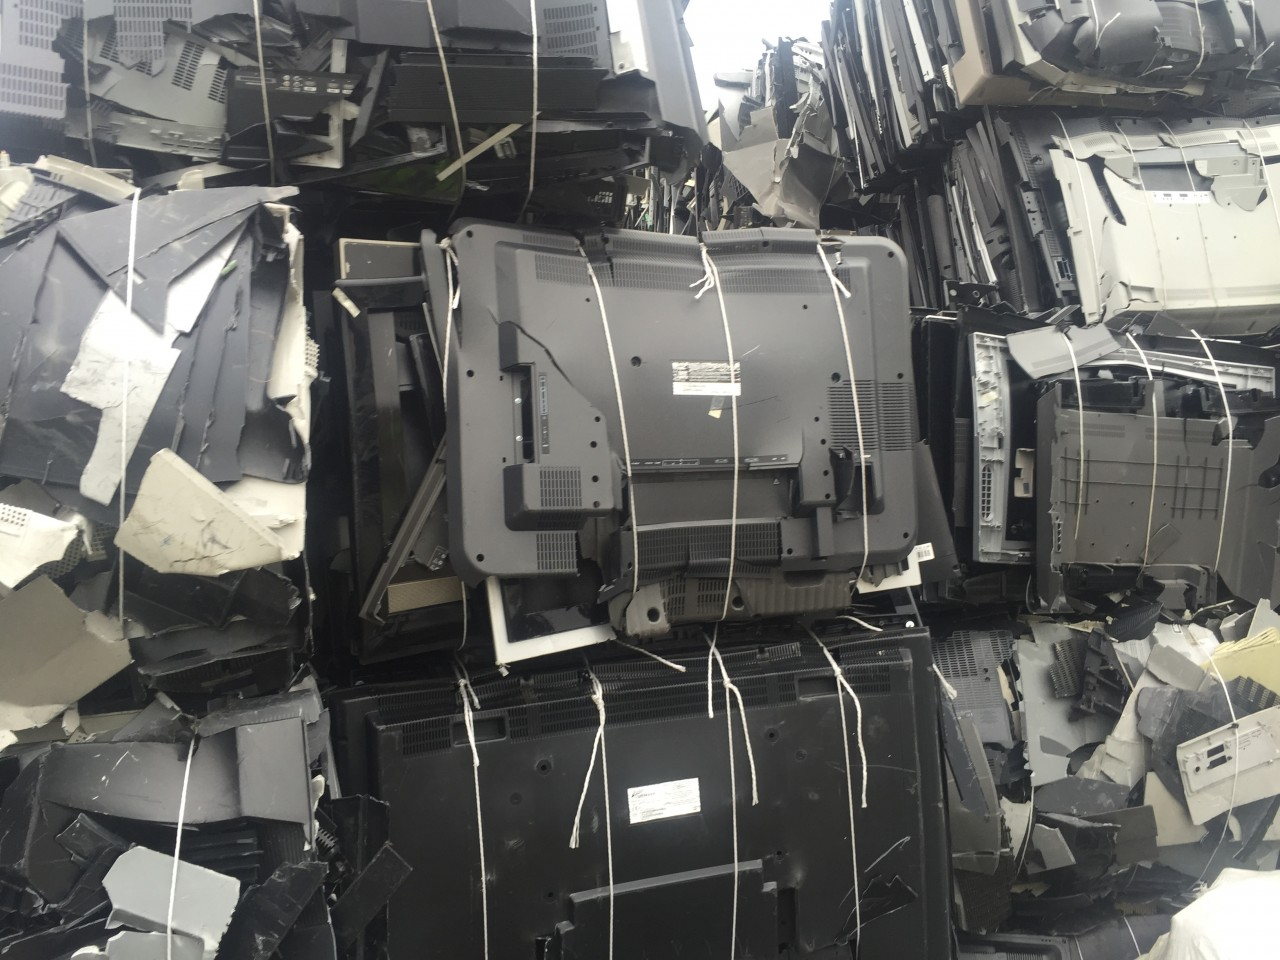 For Sale: 50 MT CRT TV Computer housing pack in bales